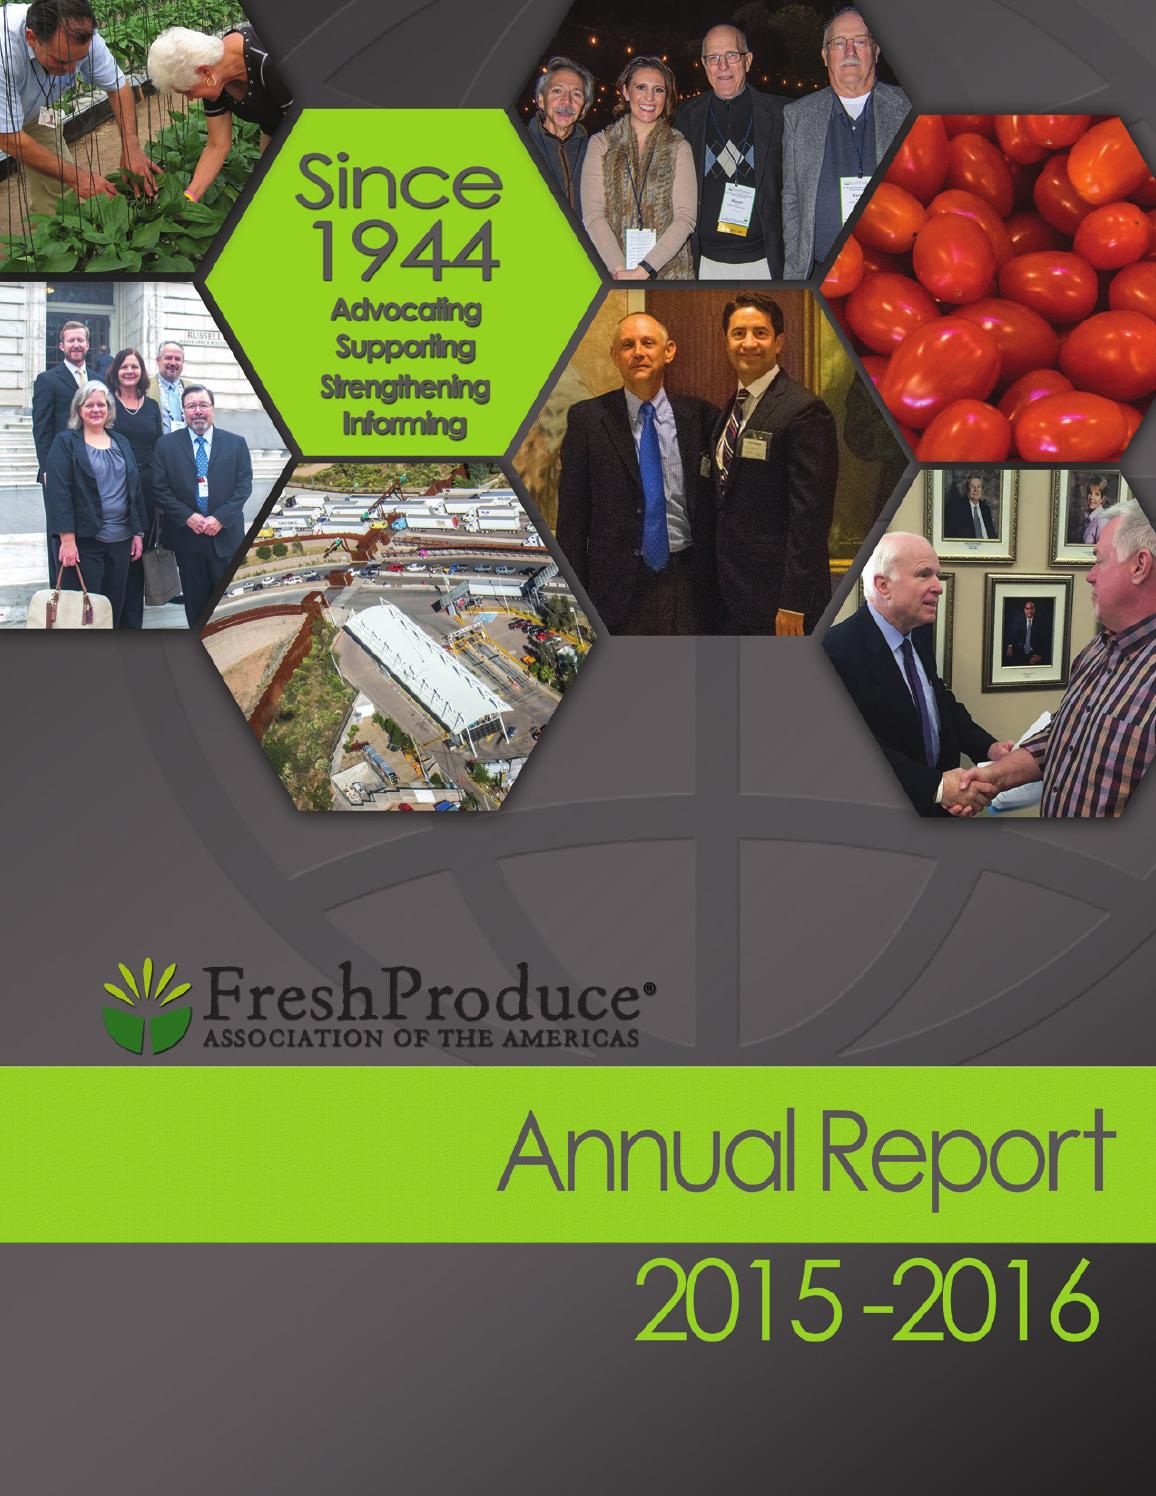 FPAA Annual Report 2015-2016 by Fresh Produce Association of